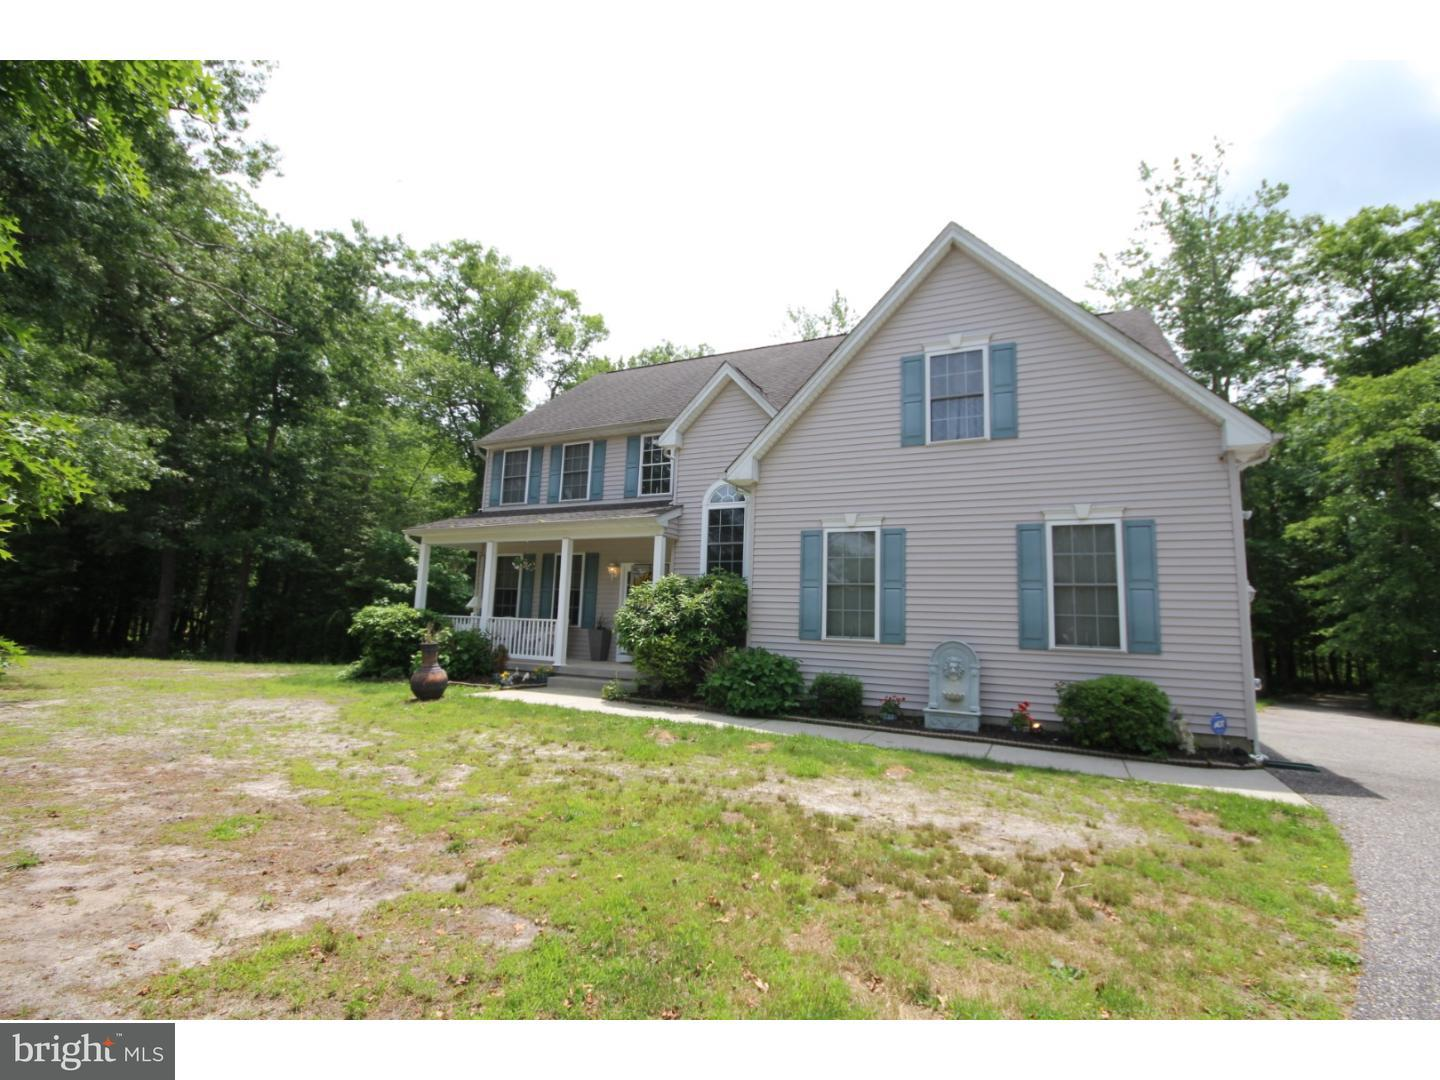 Single Family Home for Sale at 1587 MAYS LANDING SOMERS PT Road Egg Harbor Township, New Jersey 08234 United States